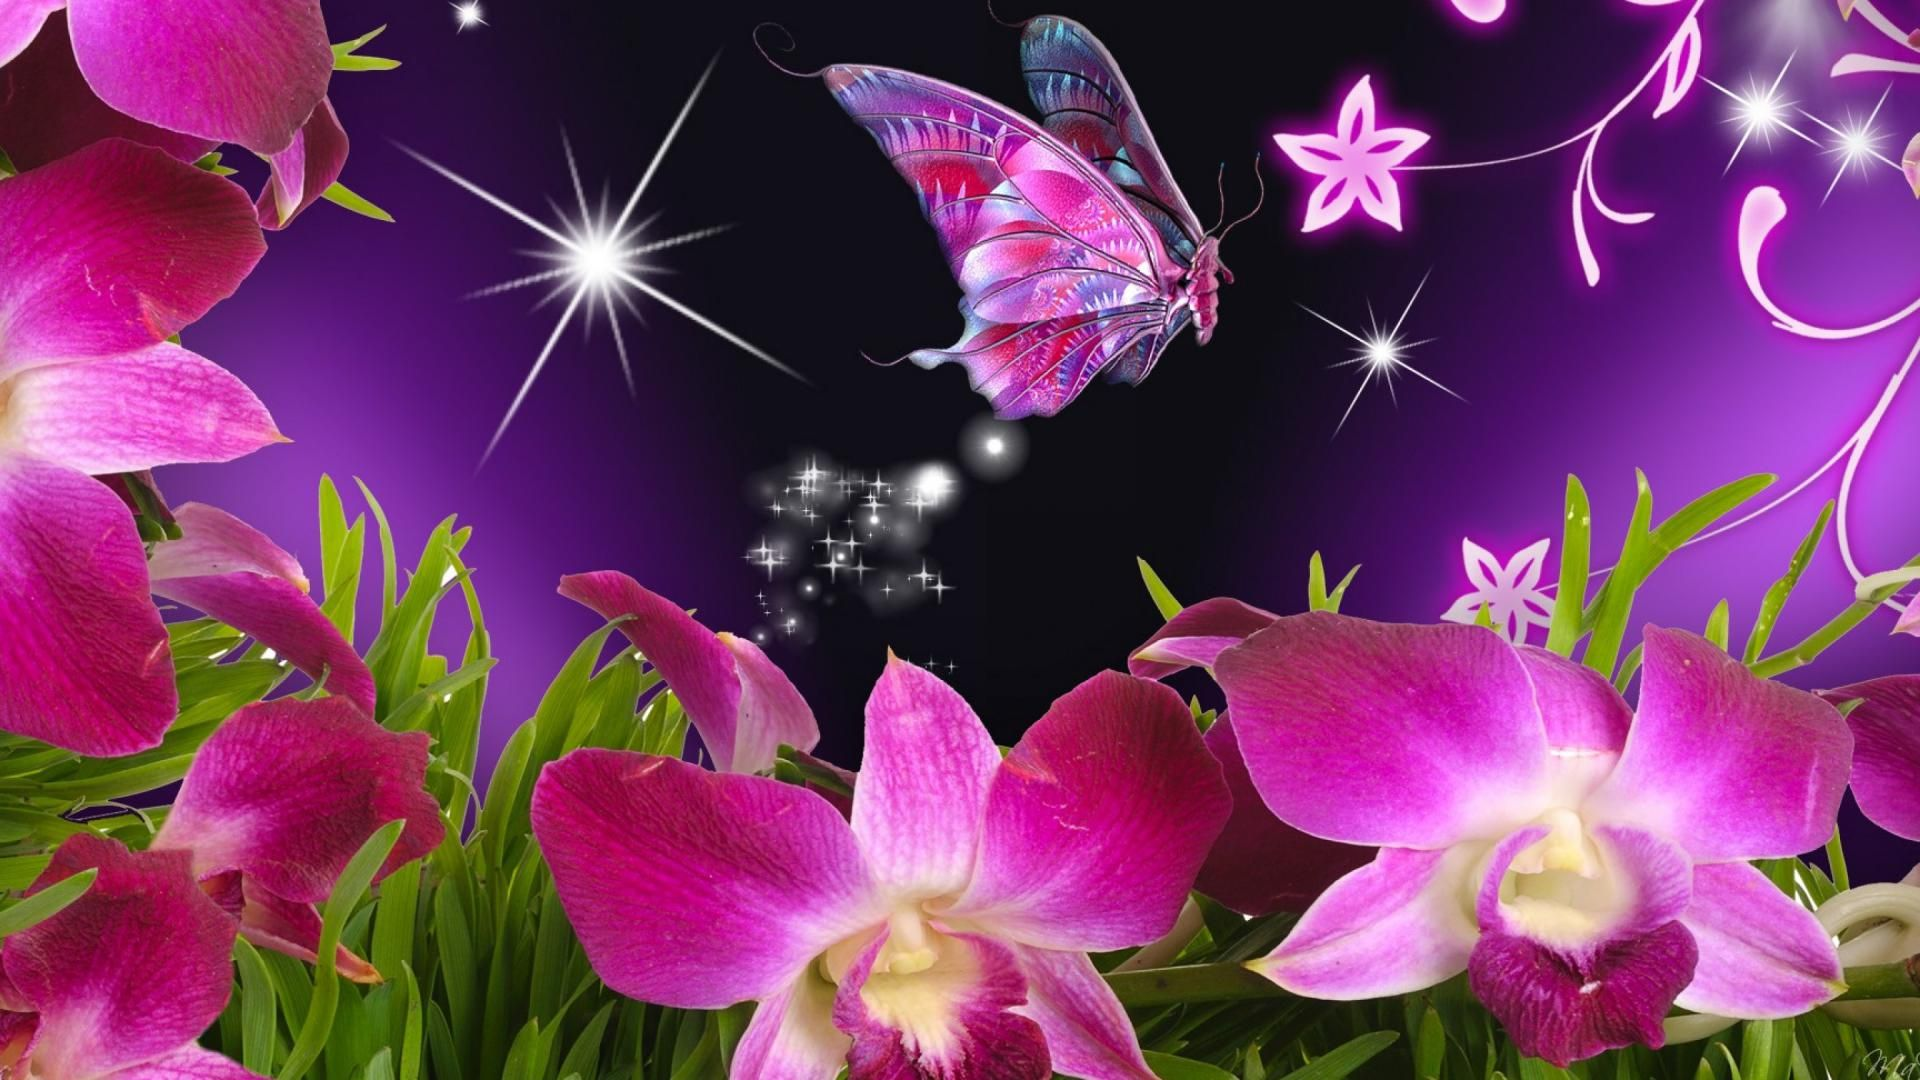 Pin By Carrabags On T D Wallpaper Nature Flowers Butterfly Wallpaper Flower Wallpaper